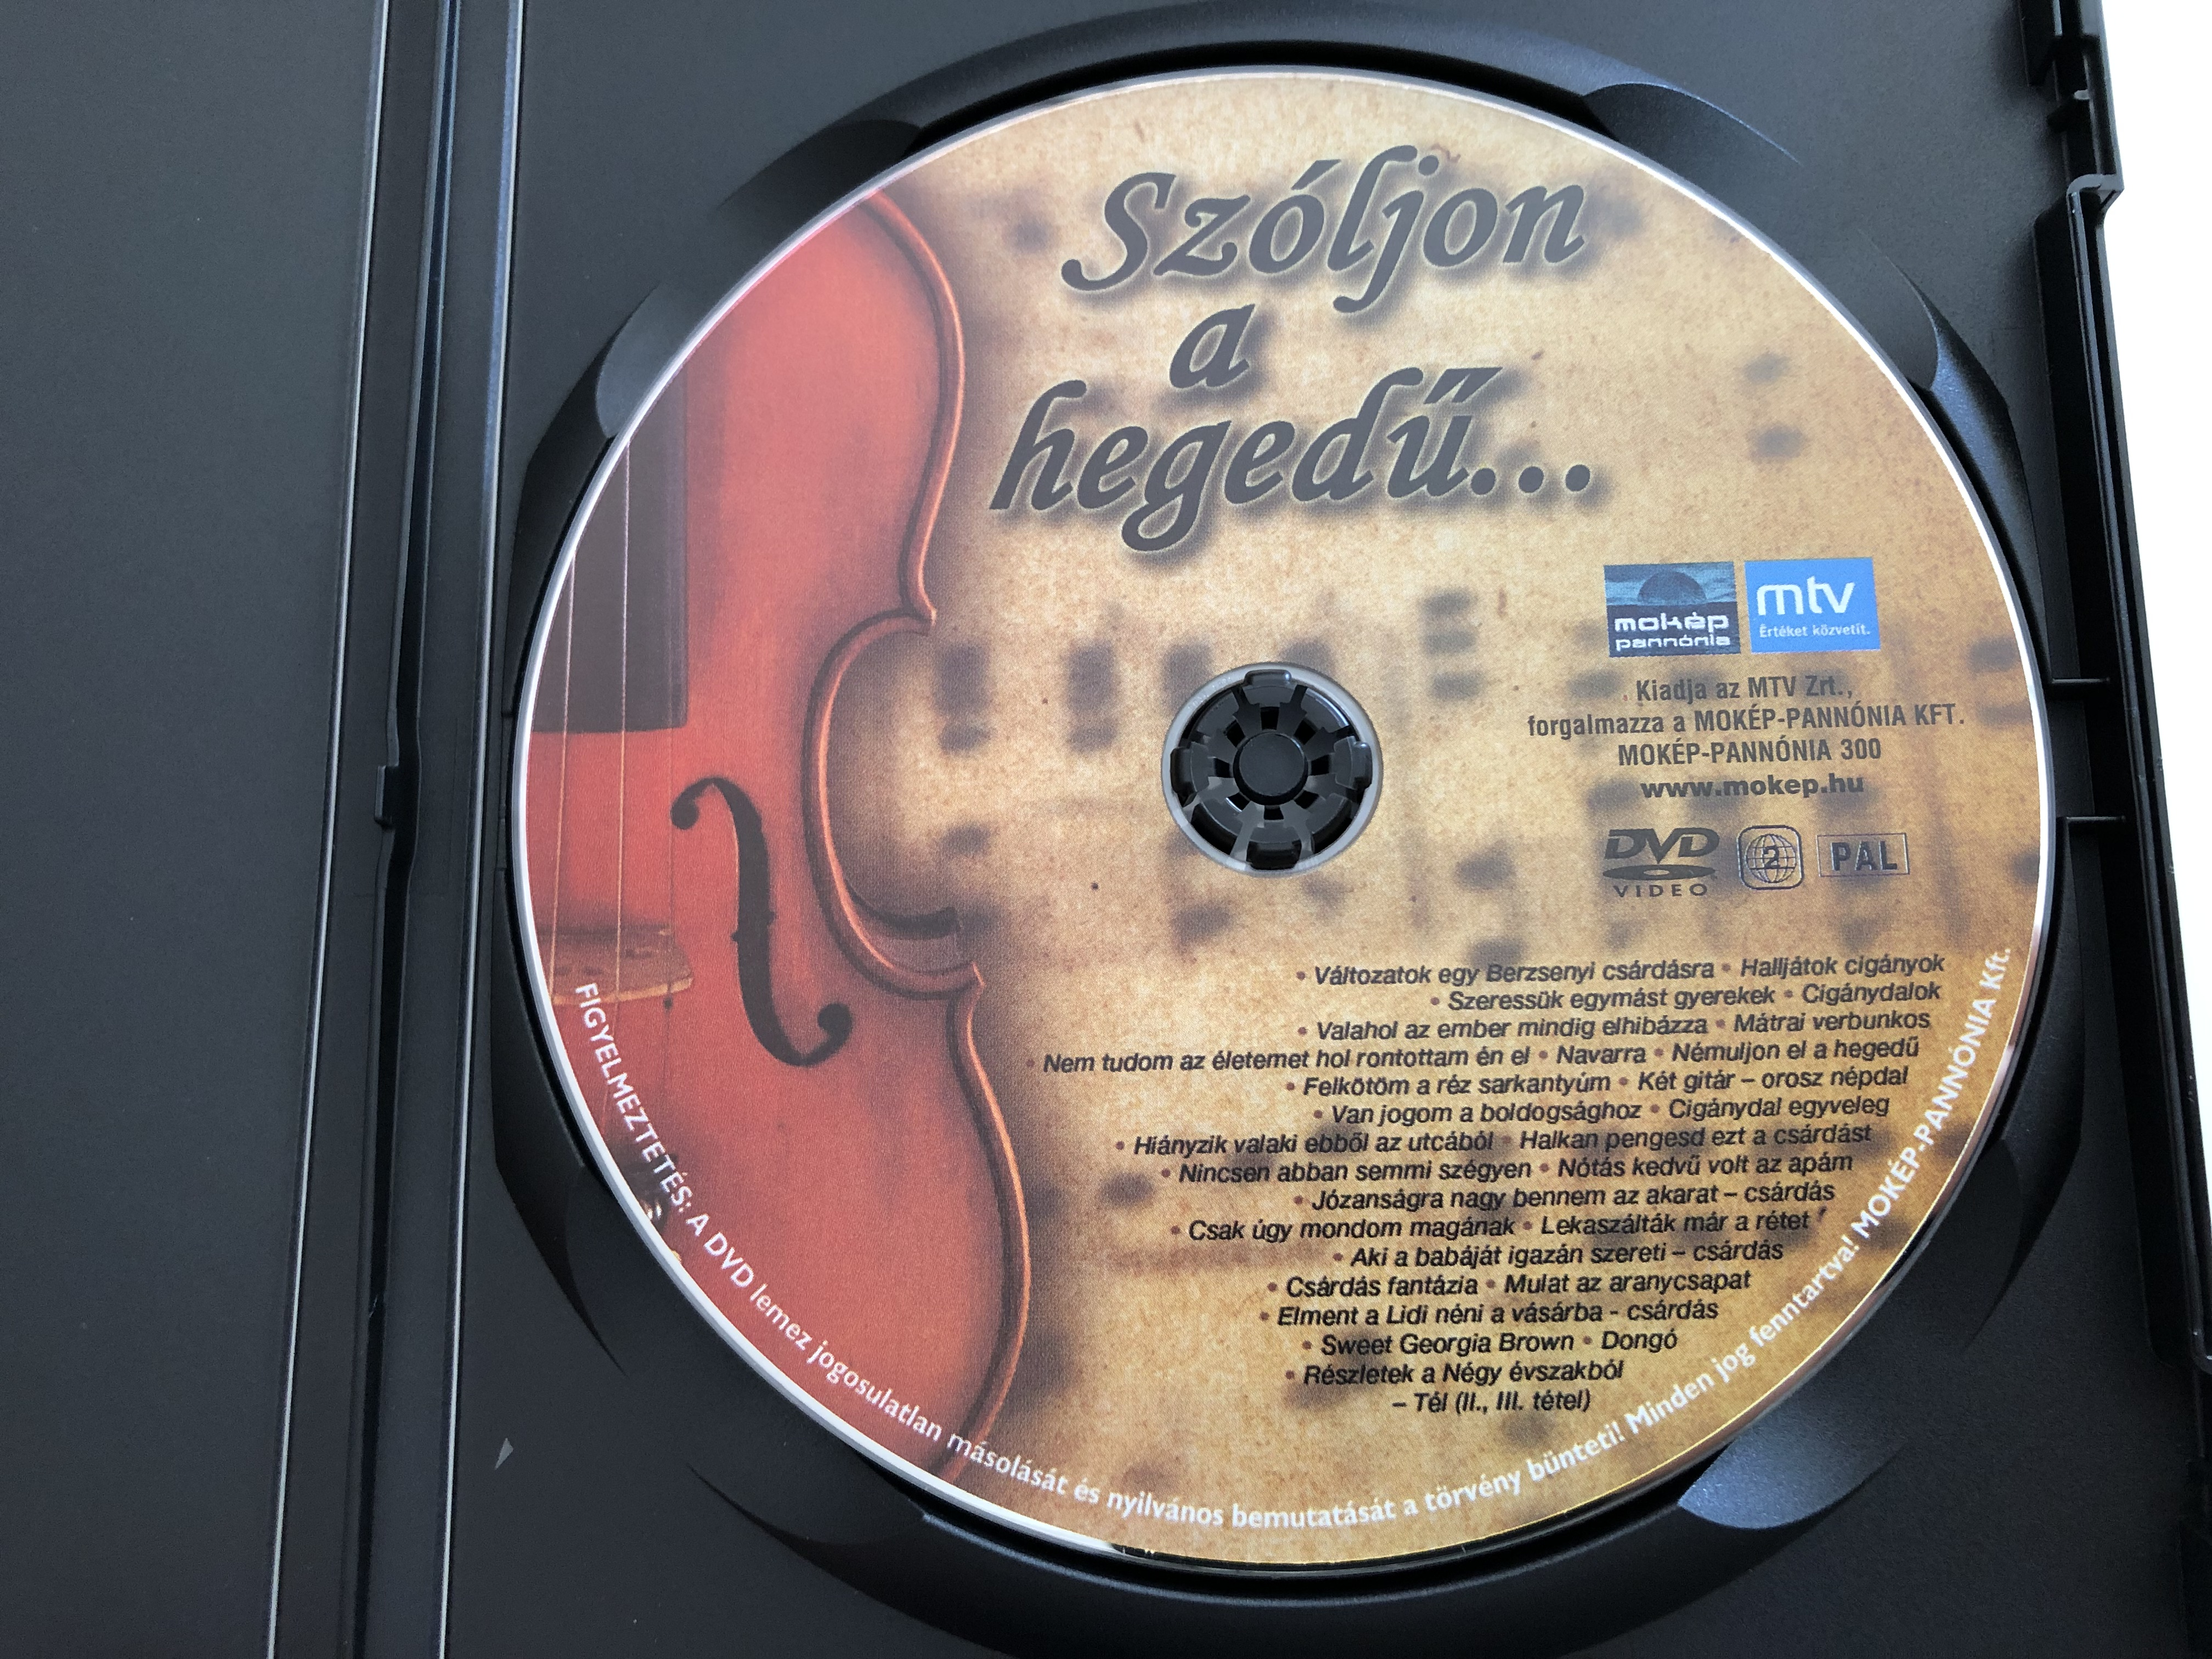 sz-ljon-a-heged-...-dvd-ifj.-s-nta-ferenc-hungarian-gypsy-orchestra-conducted-by-szenthelyi-mikl-s-m-k-p-mtv-compilated-by-nemlaha-gy-rgy-5-.jpg